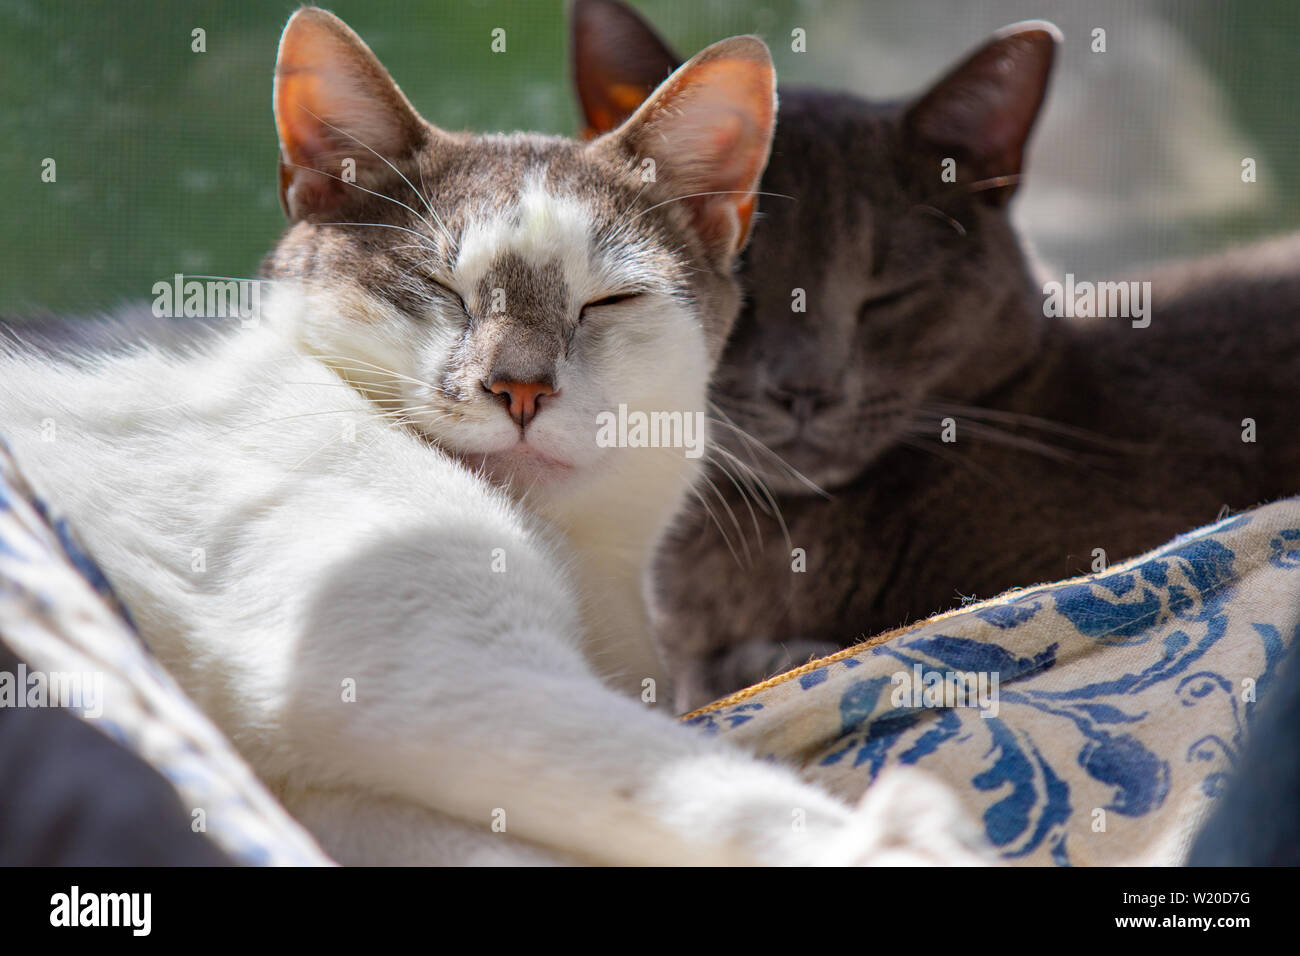 Brotherly love. These two young male cats were from different litters, but adopted together from the Humane Society. - Stock Image